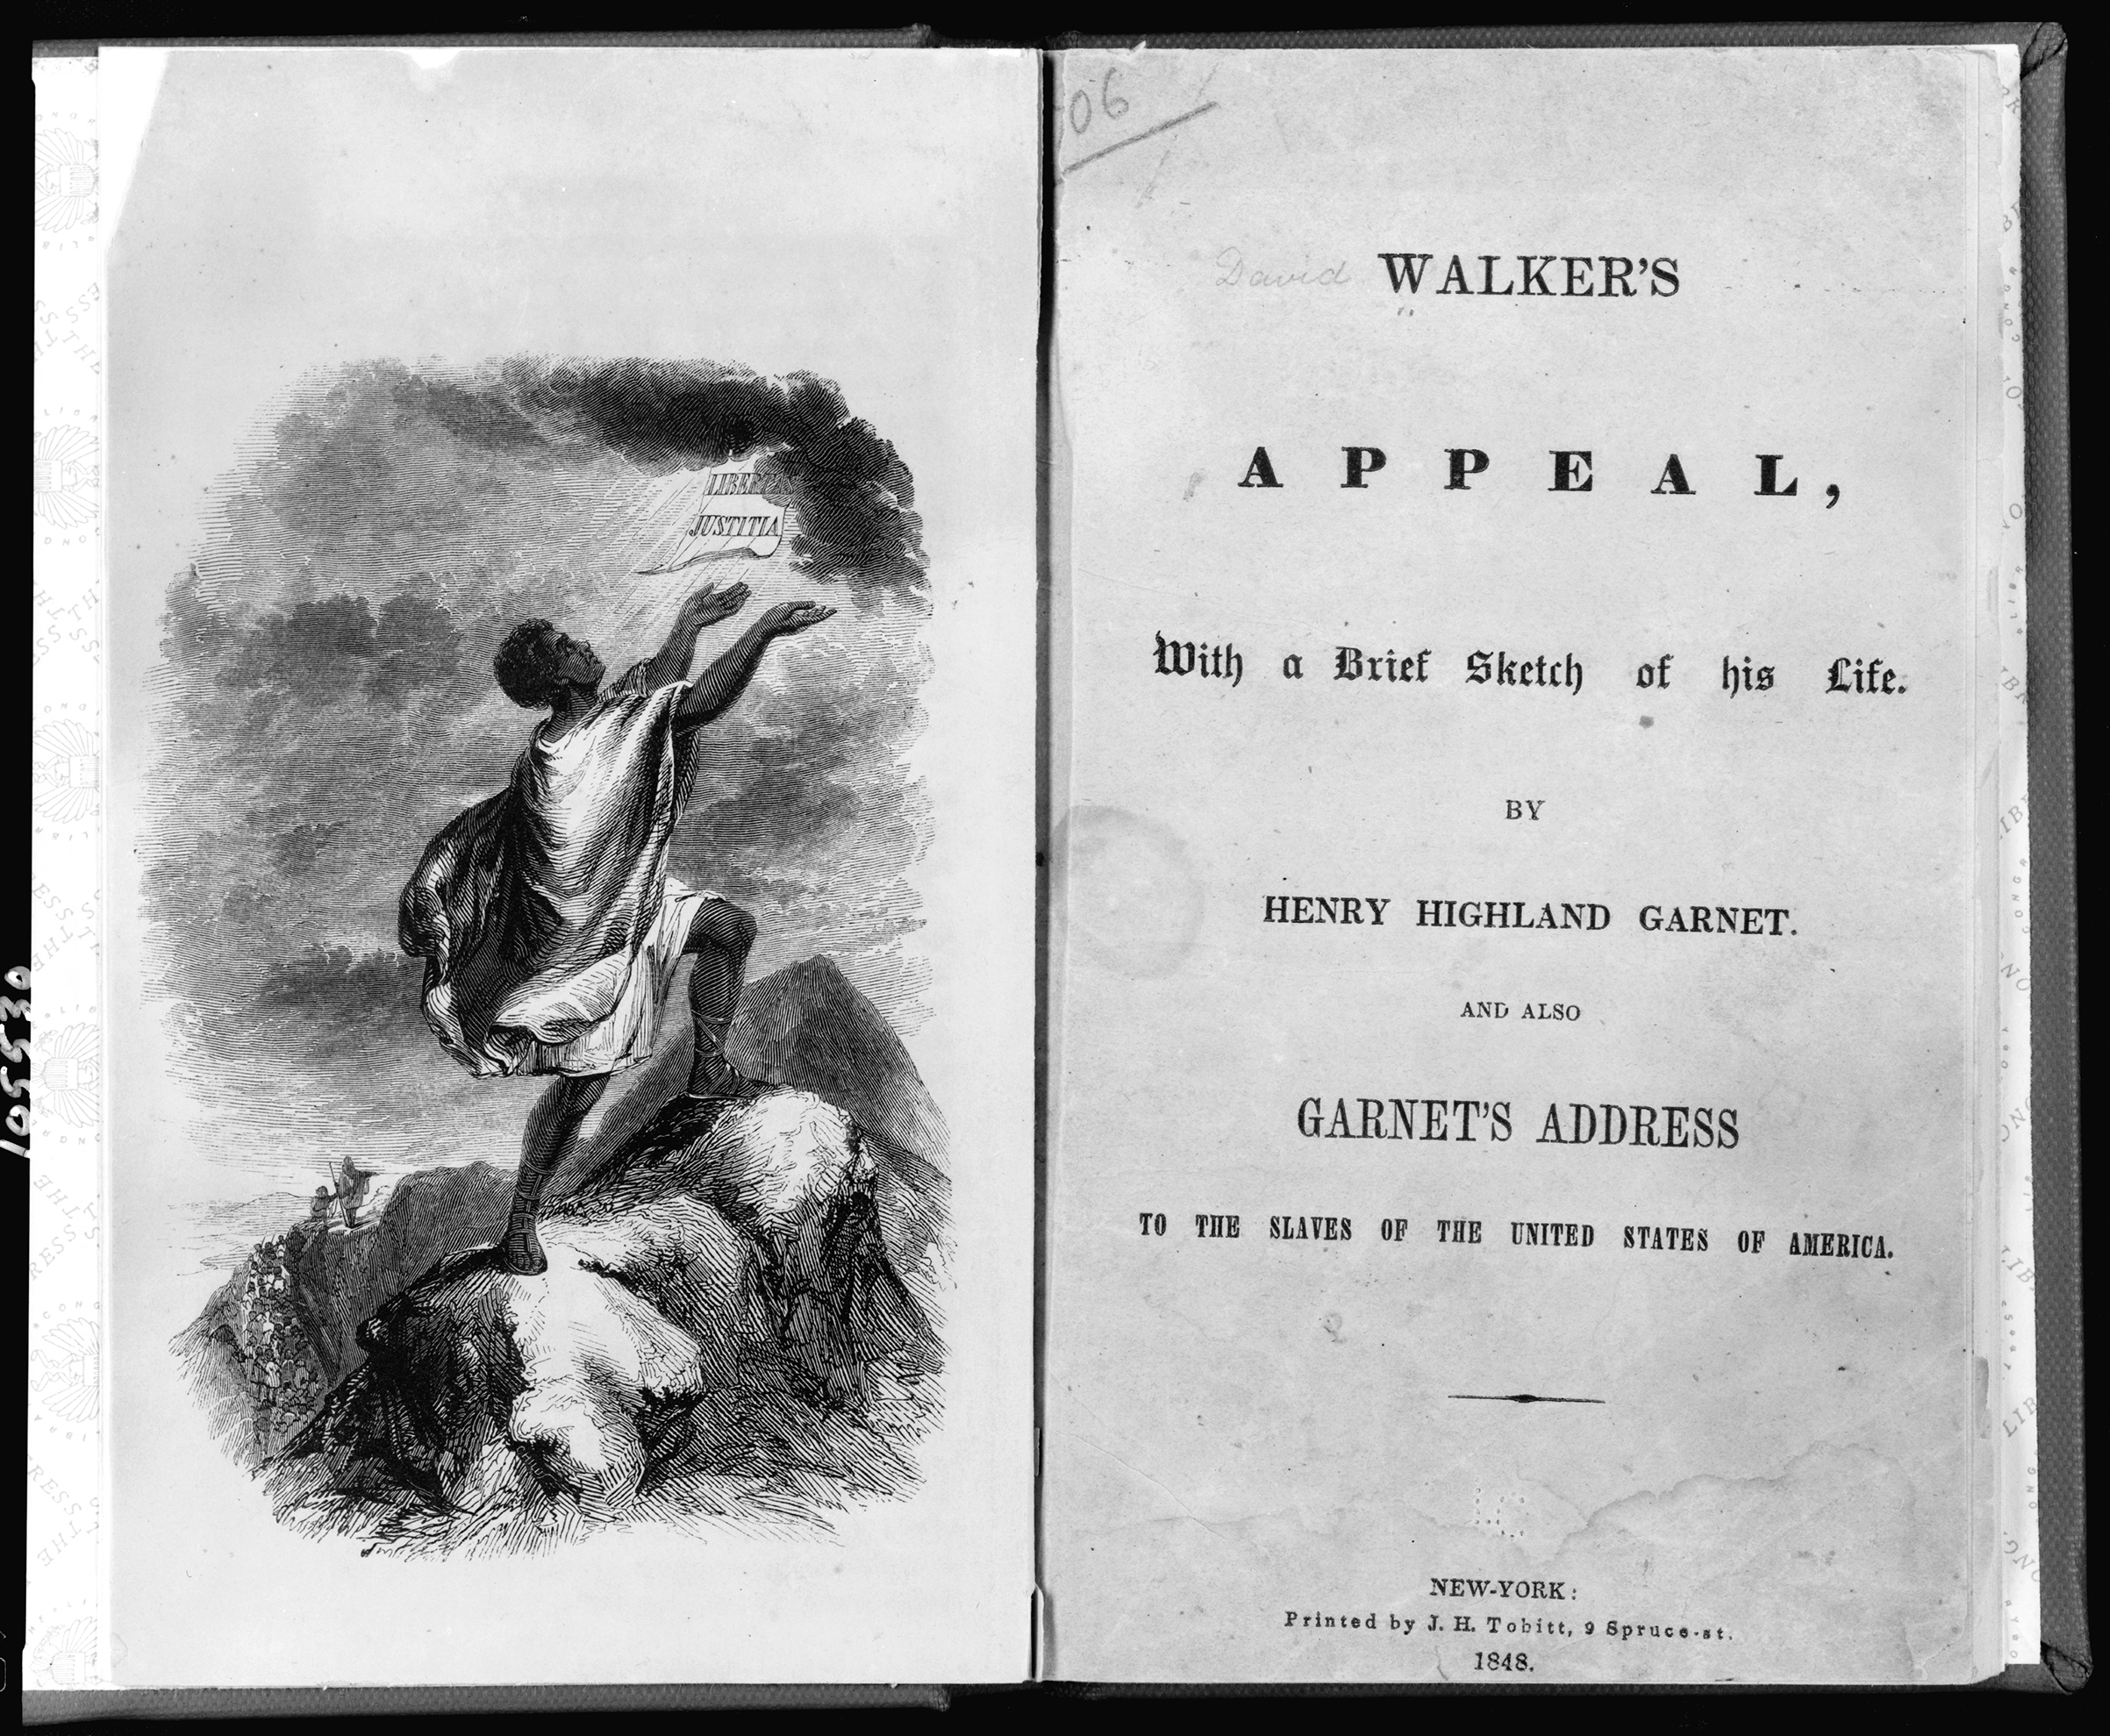 Title page showing slave on top of mountain from David Walkers Appeal.